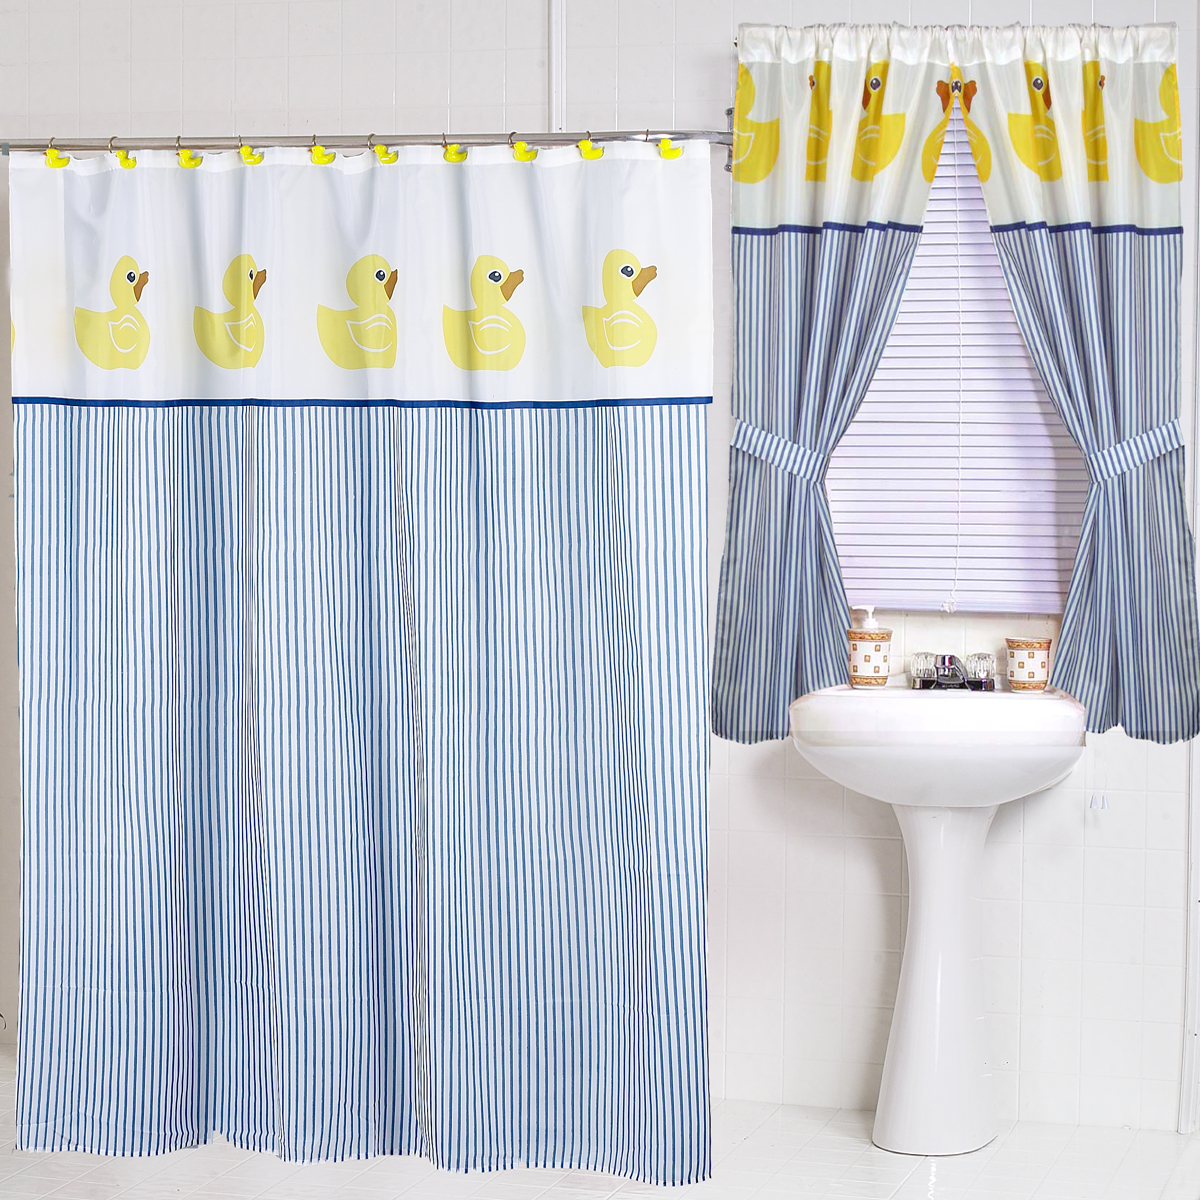 Ducky  Fabric Shower Curtain     Carnation Home Fashions  Inc   Fabric Shower Curtains. Blue And Yellow Shower Curtain. Home Design Ideas